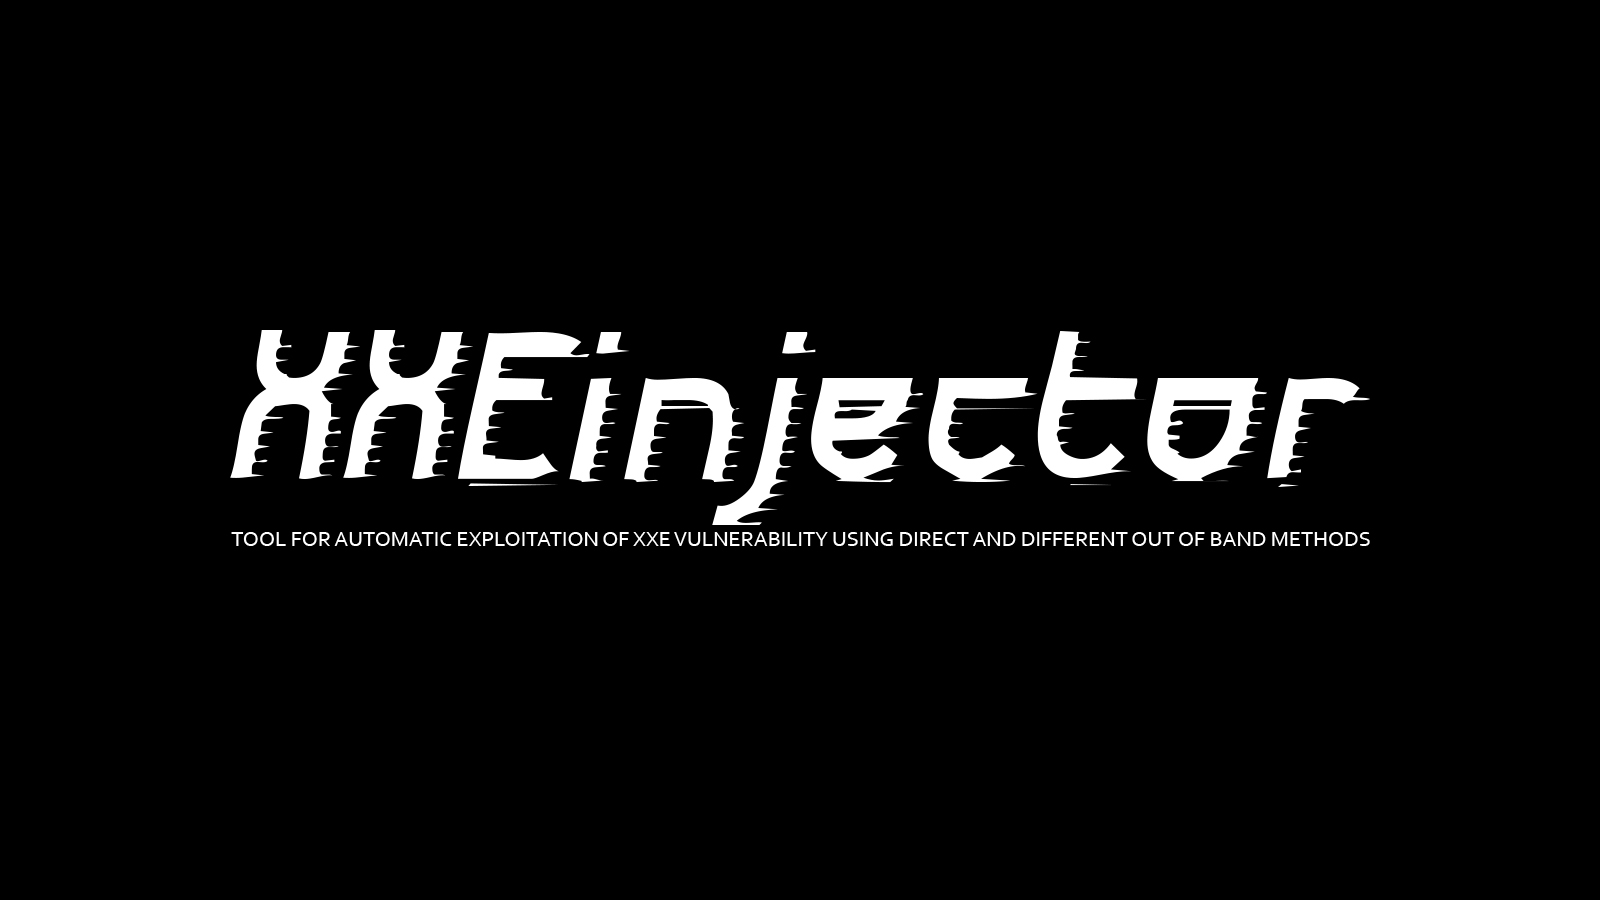 XXEinjector - Tool for Automatic Exploitation of XXE Vulnerability Using Direct and Different Out of Band Methods